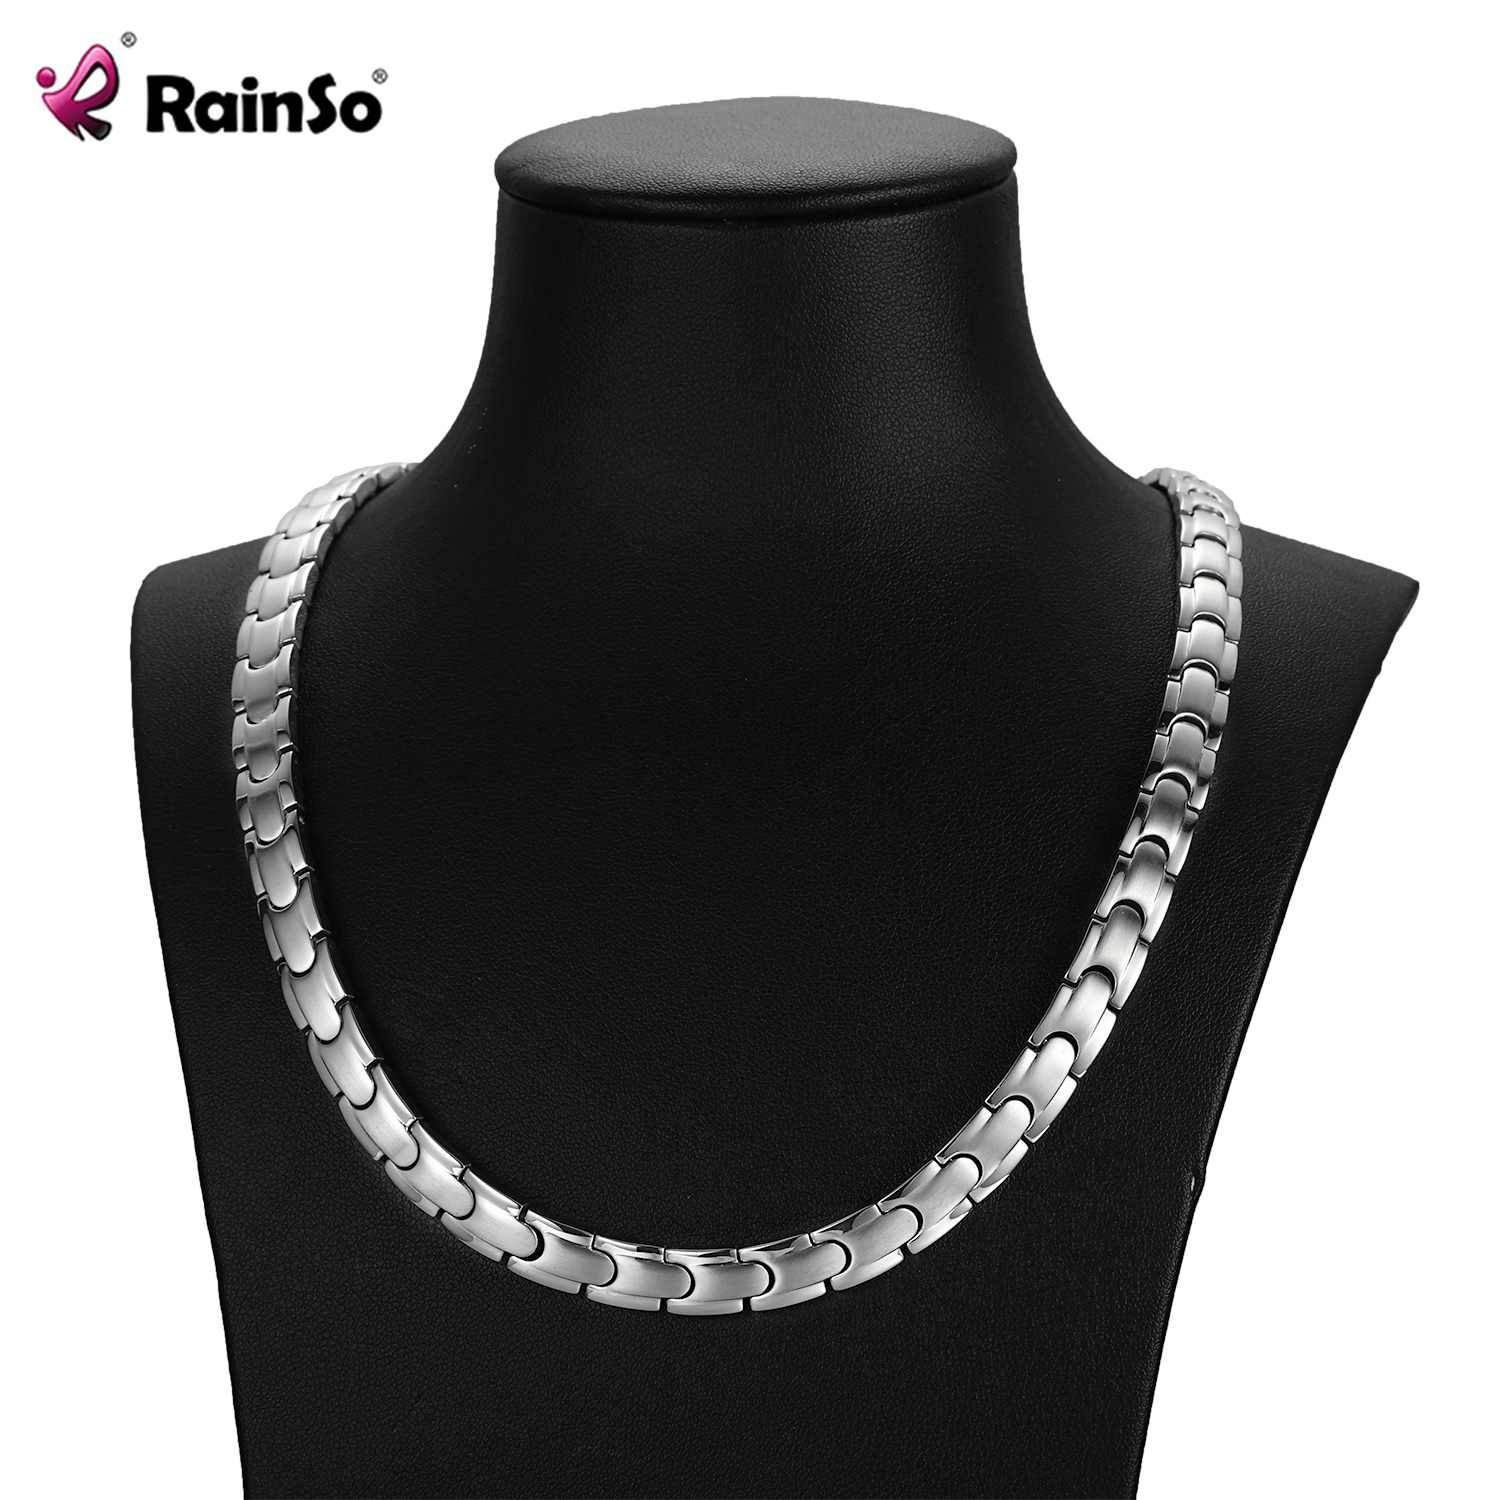 RainSo Sliver Link Chain Stainless Steel Necklaces Health For Arthritis FIR Bio Energy Healing Power Necklace Women For Lovers